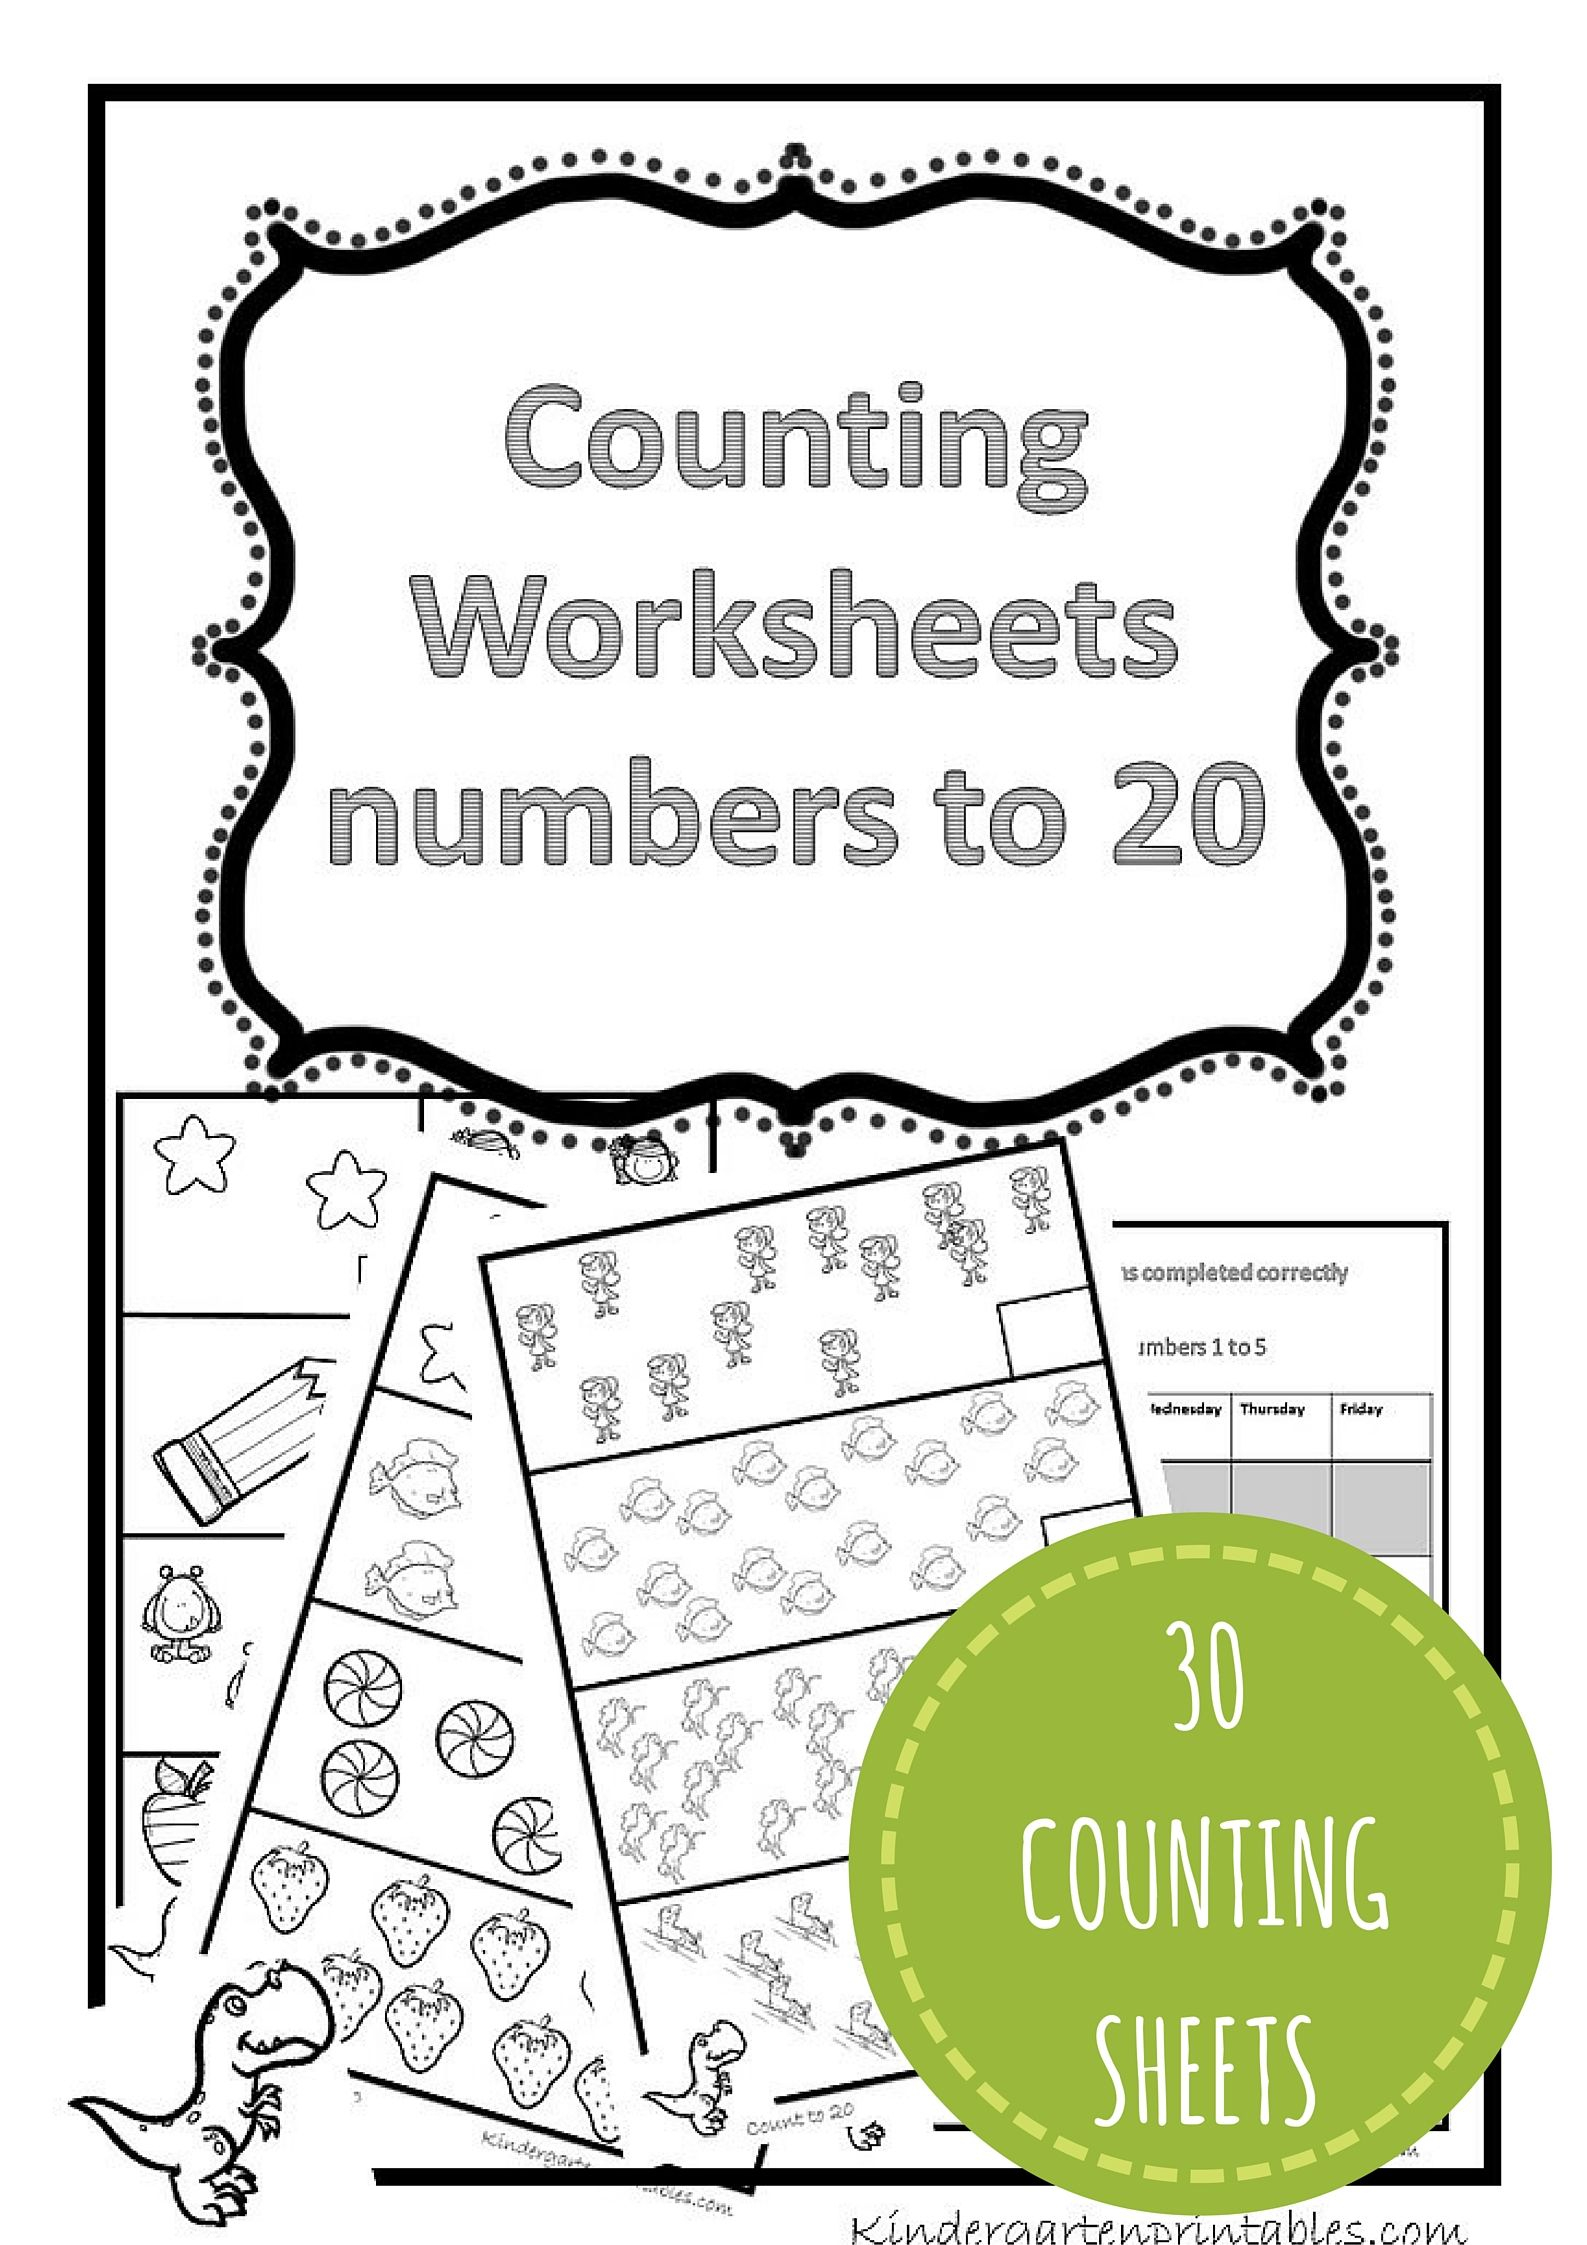 Counting Worksheets 1-20 Free Printable Workbook Counting Worksheets | Free Printable Counting Worksheets 1 20